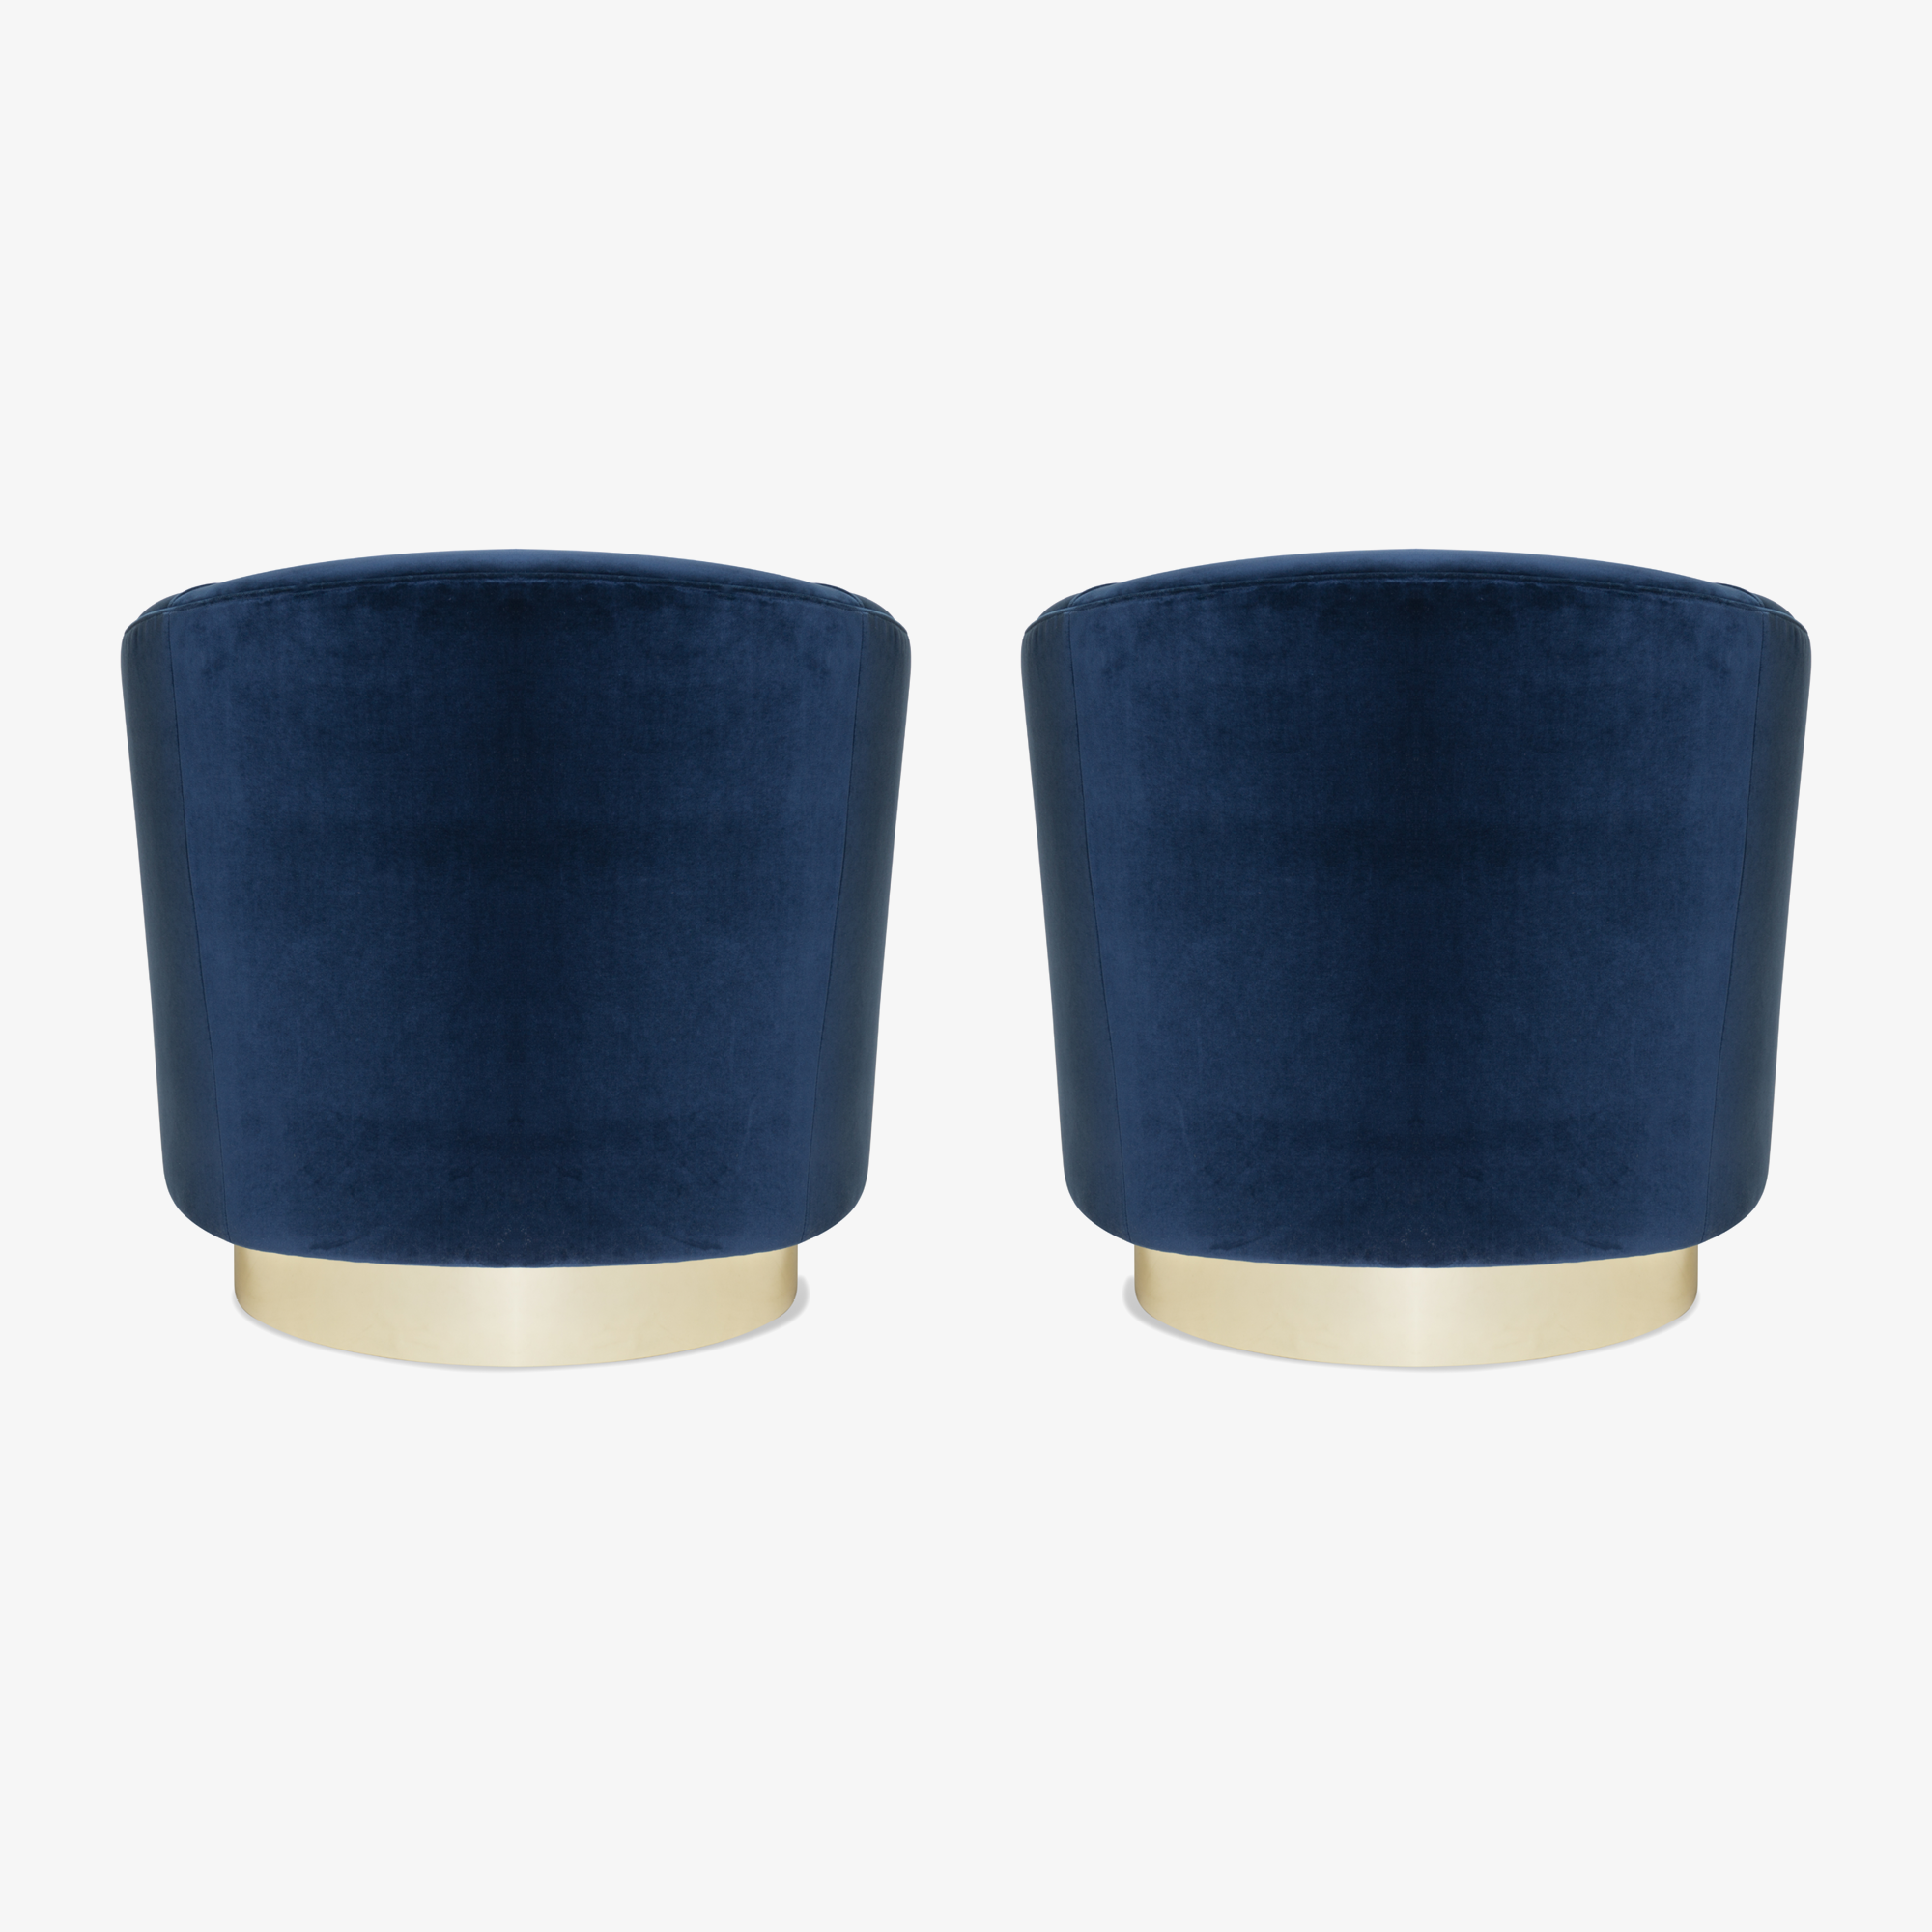 Swivel Tub Chairs in Navy Velvet with Polished Brass Bases, Pair5.png